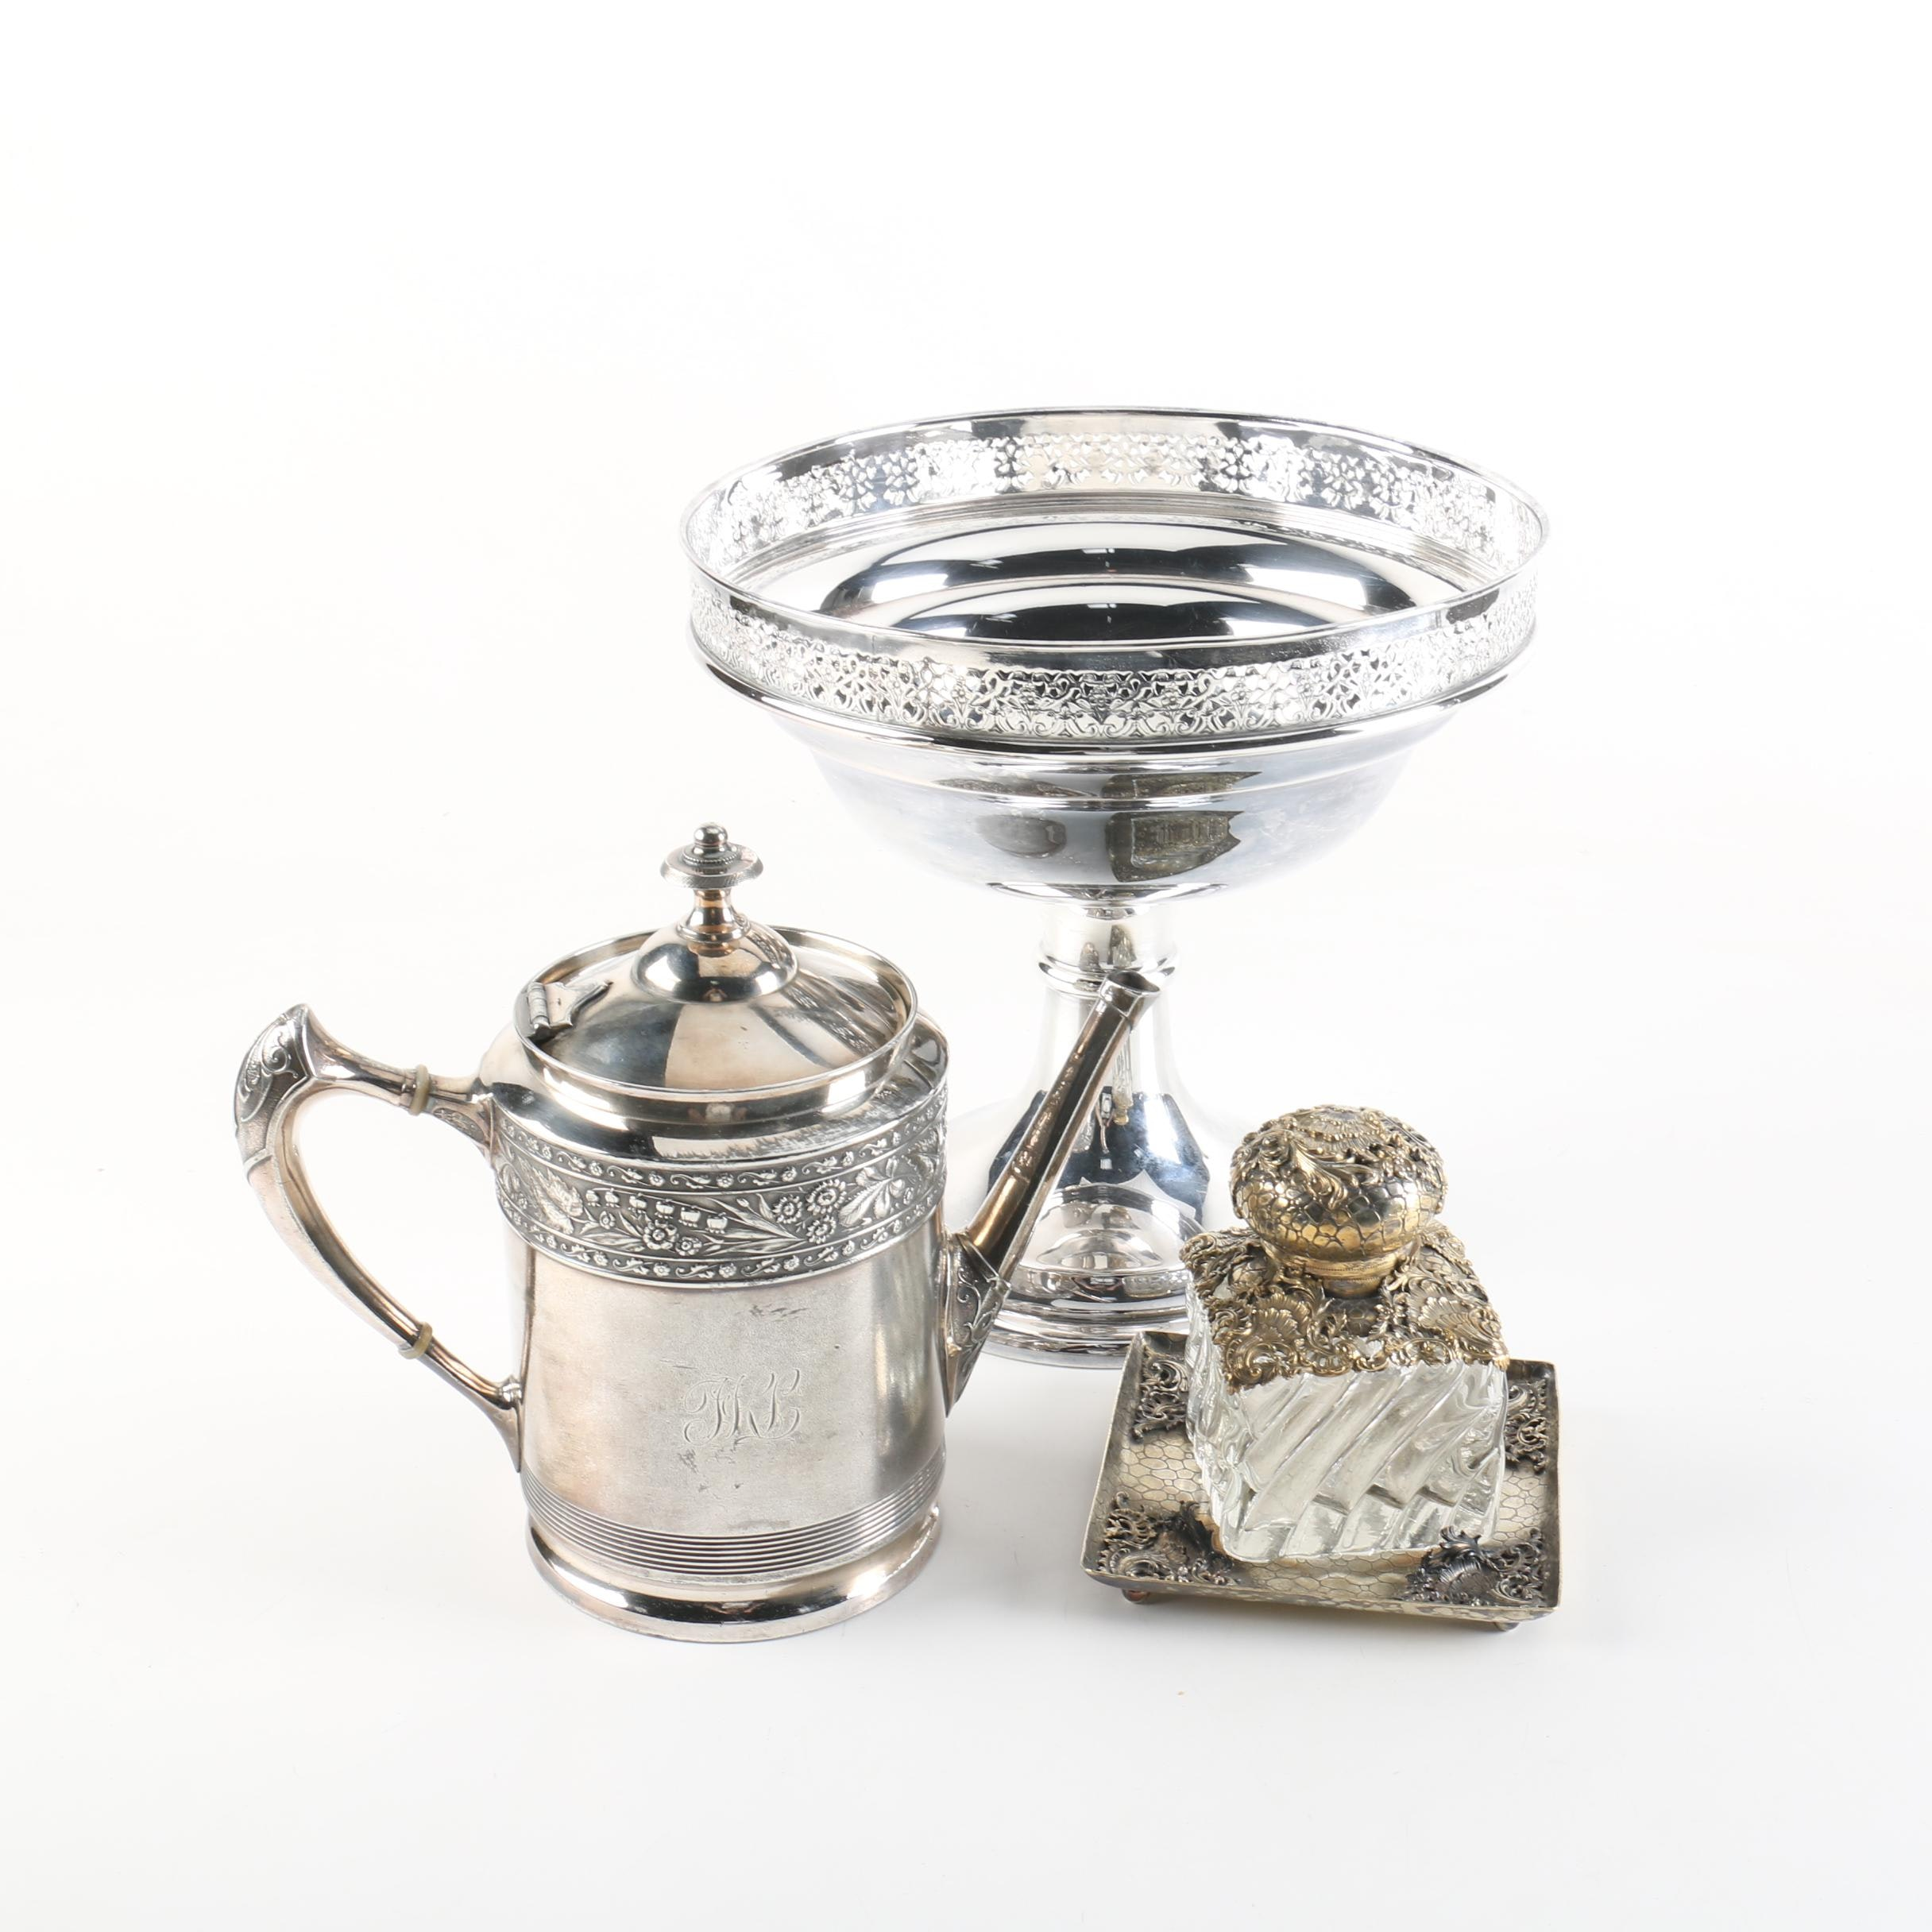 Middletown Aesthetic Movement Silver Plate Teapot and Other Pieces